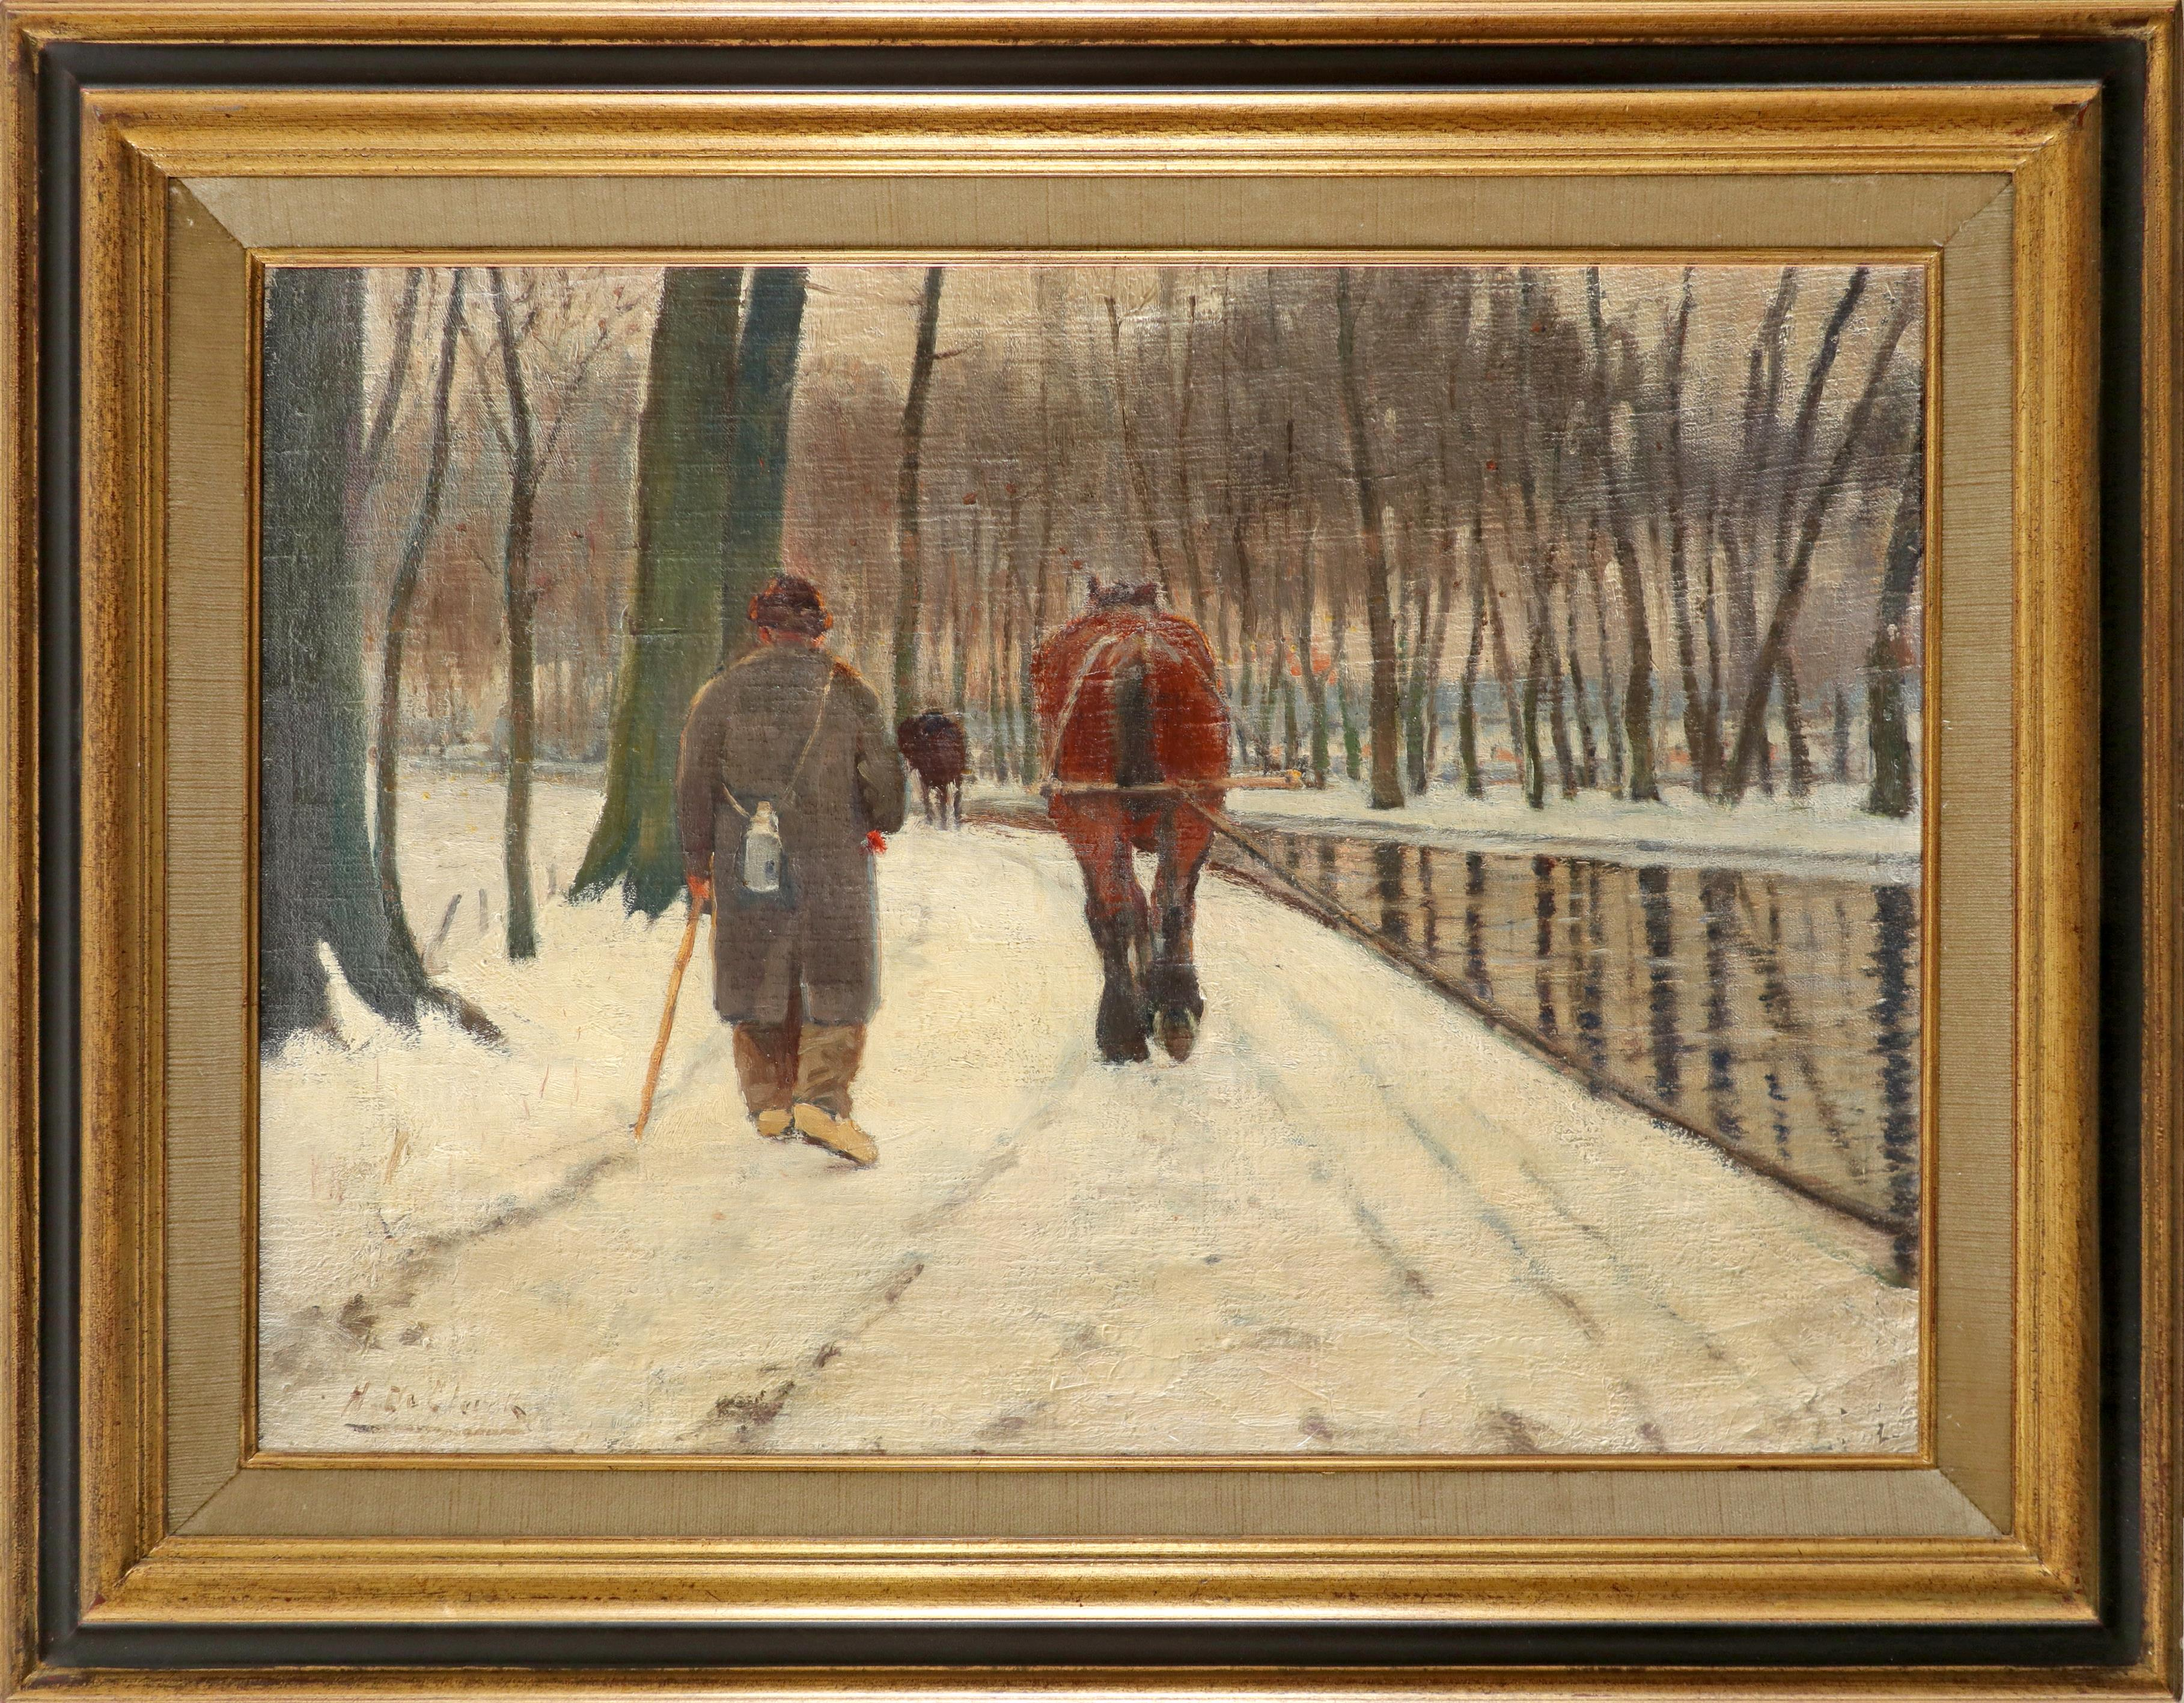 Henry de Clerck (Belgium act. 1886-1900) Winter landscape with a man and barge horse by a canal - Image 2 of 3